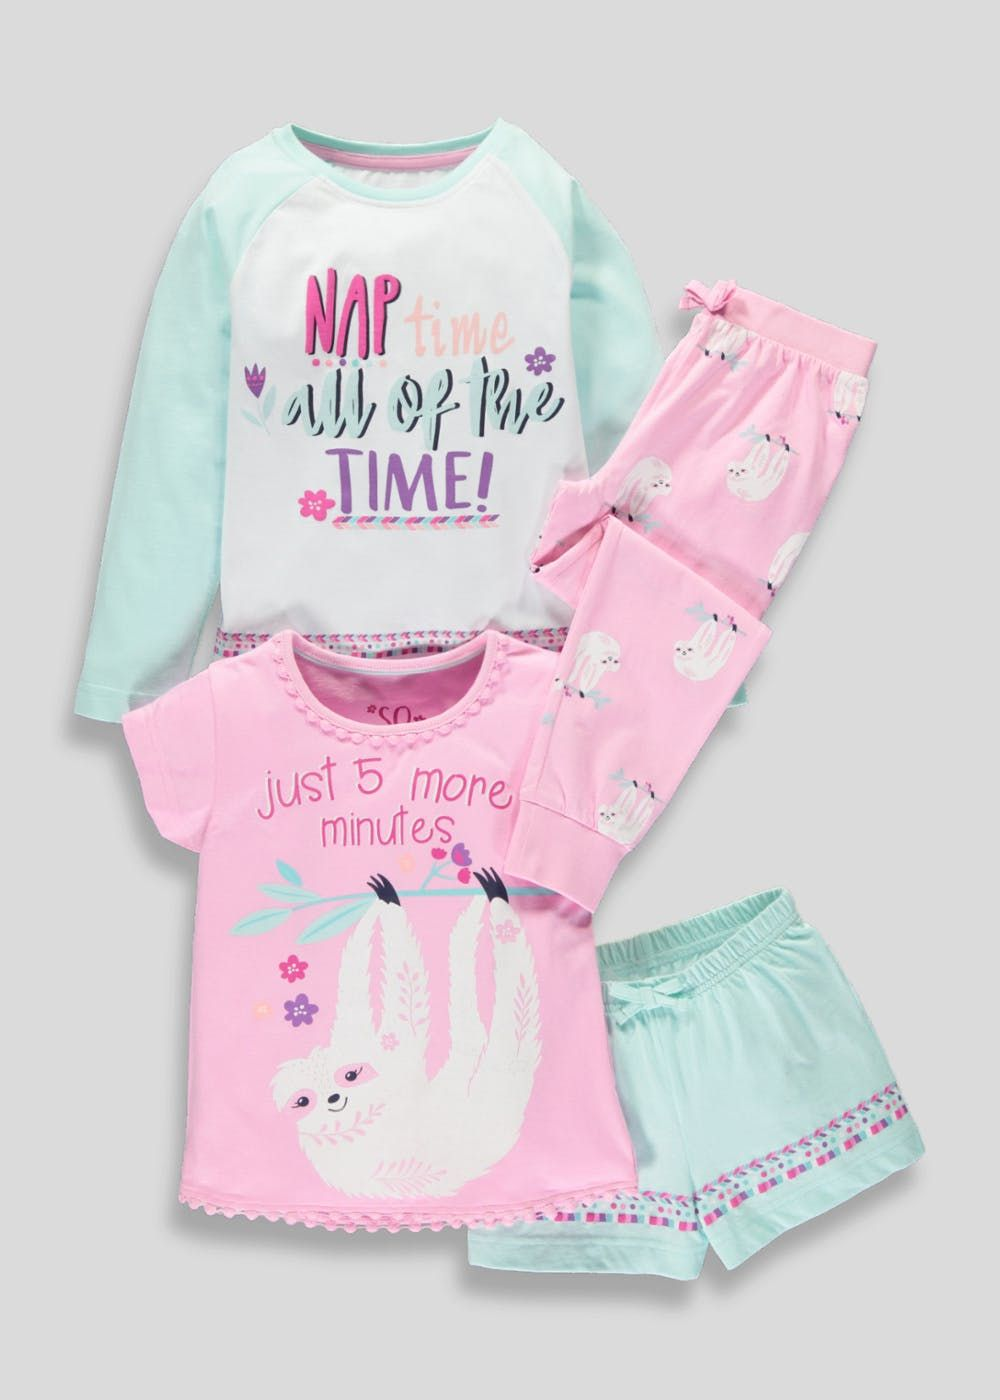 save up to 80% shoes for cheap pretty and colorful Girls 2 Pack Sloth Pyjamas (4-13yrs) – Multi | PIJAMAS BEBAS ...